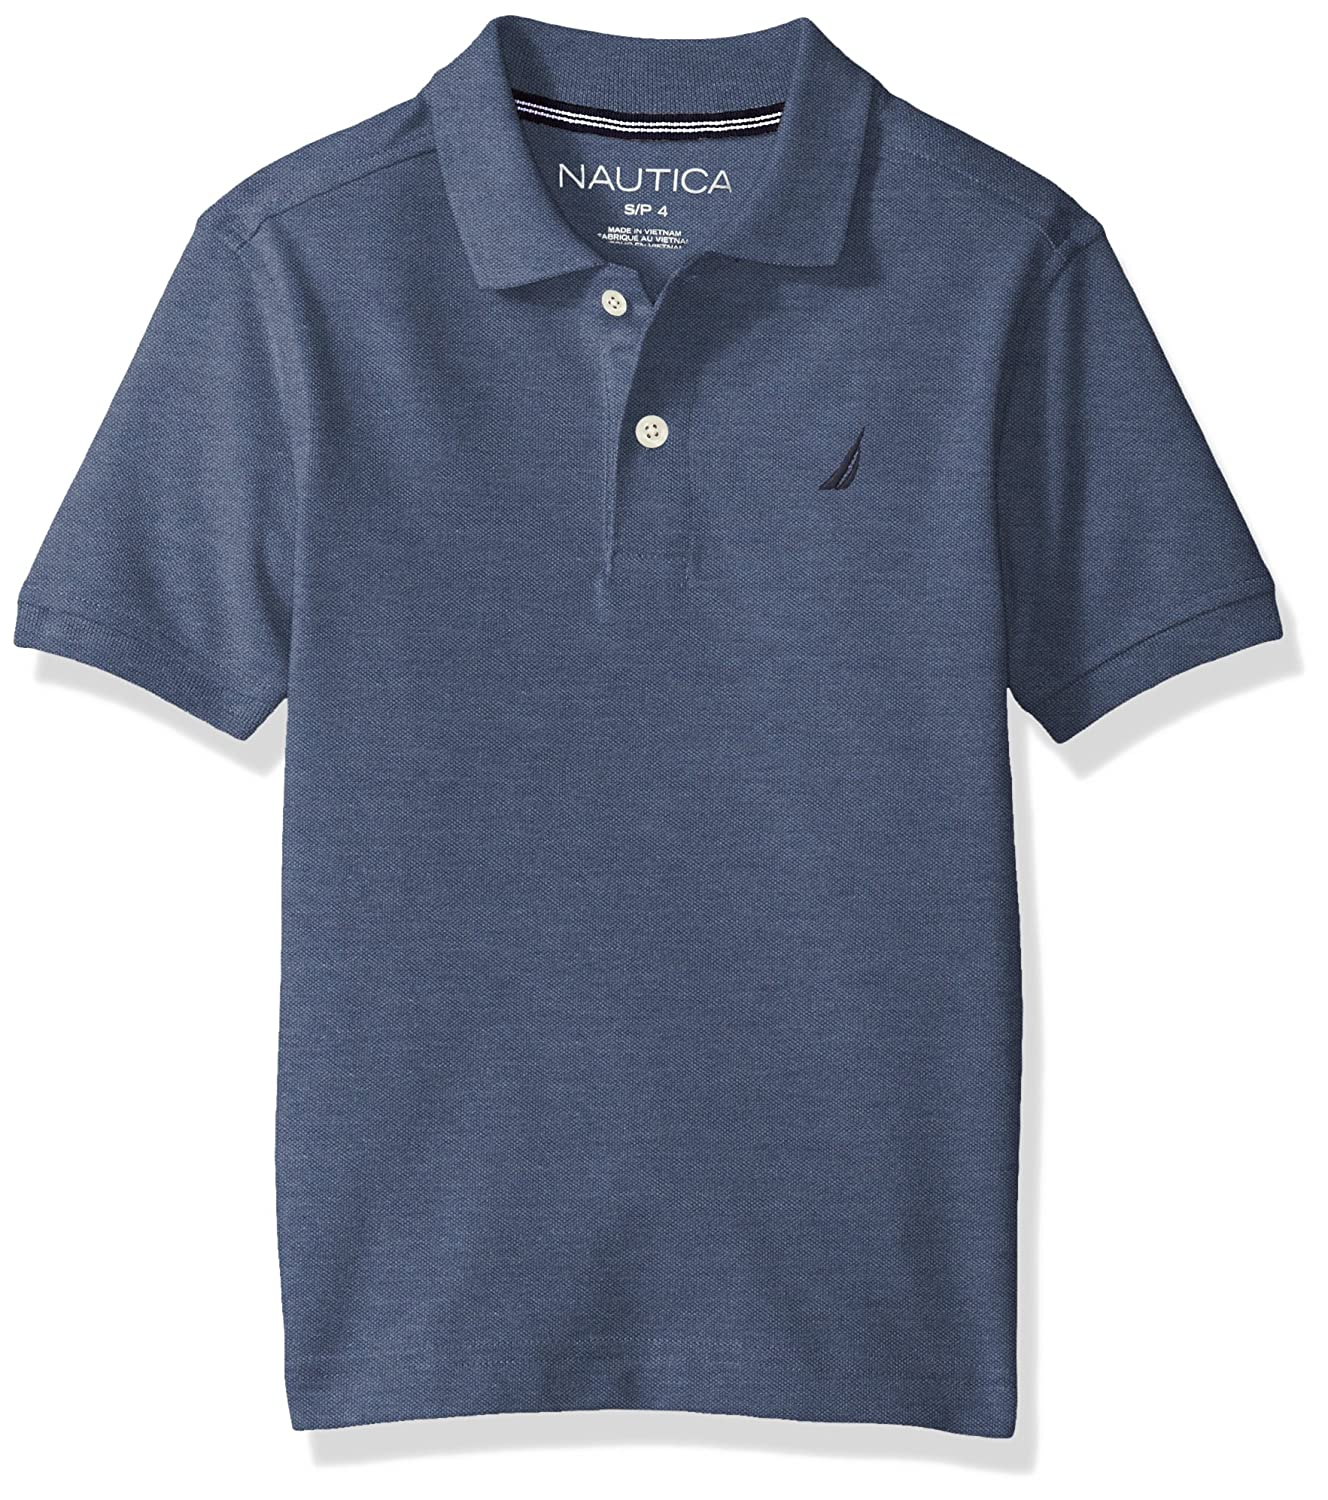 Nautica Boys Short Sleeve Deck Shirt Pique Polo 81697Q